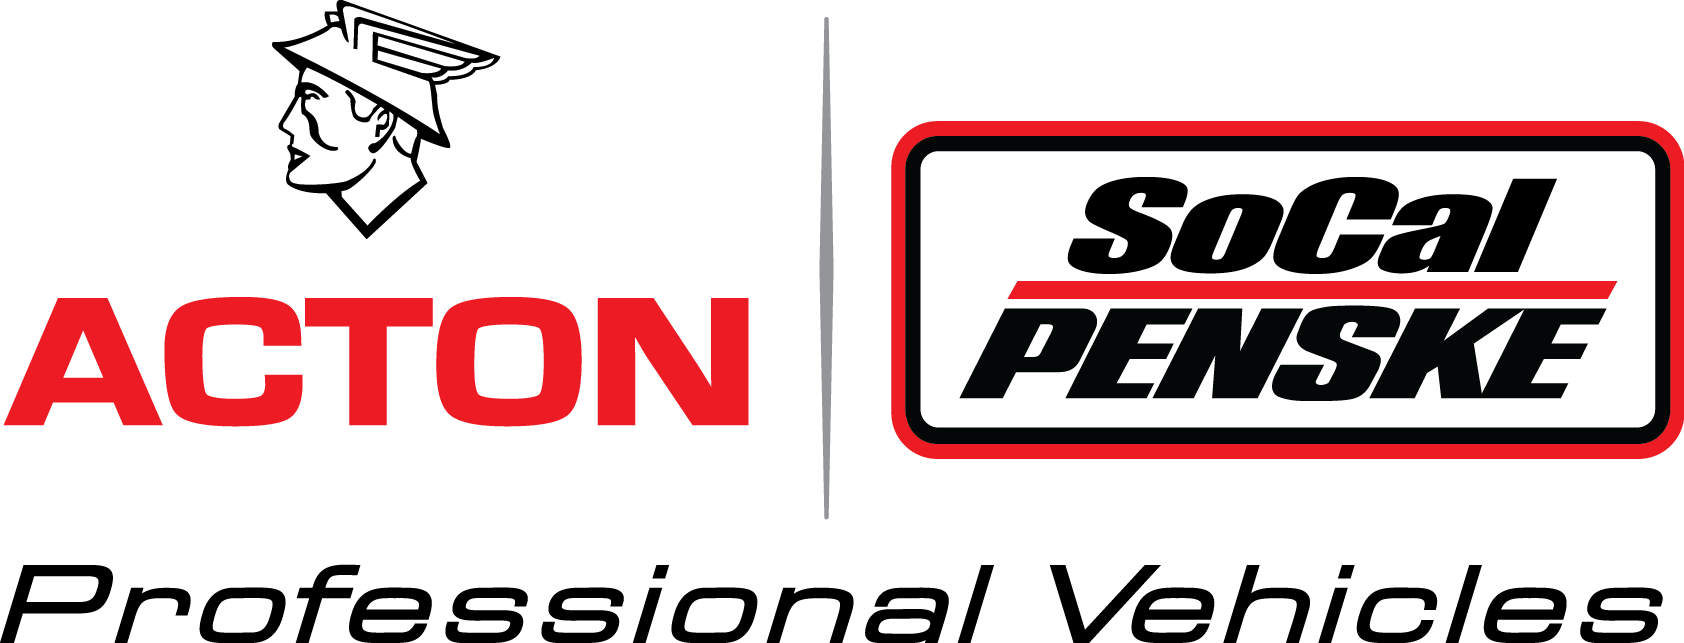 Acton/SoCal Penske Professional Vehicles